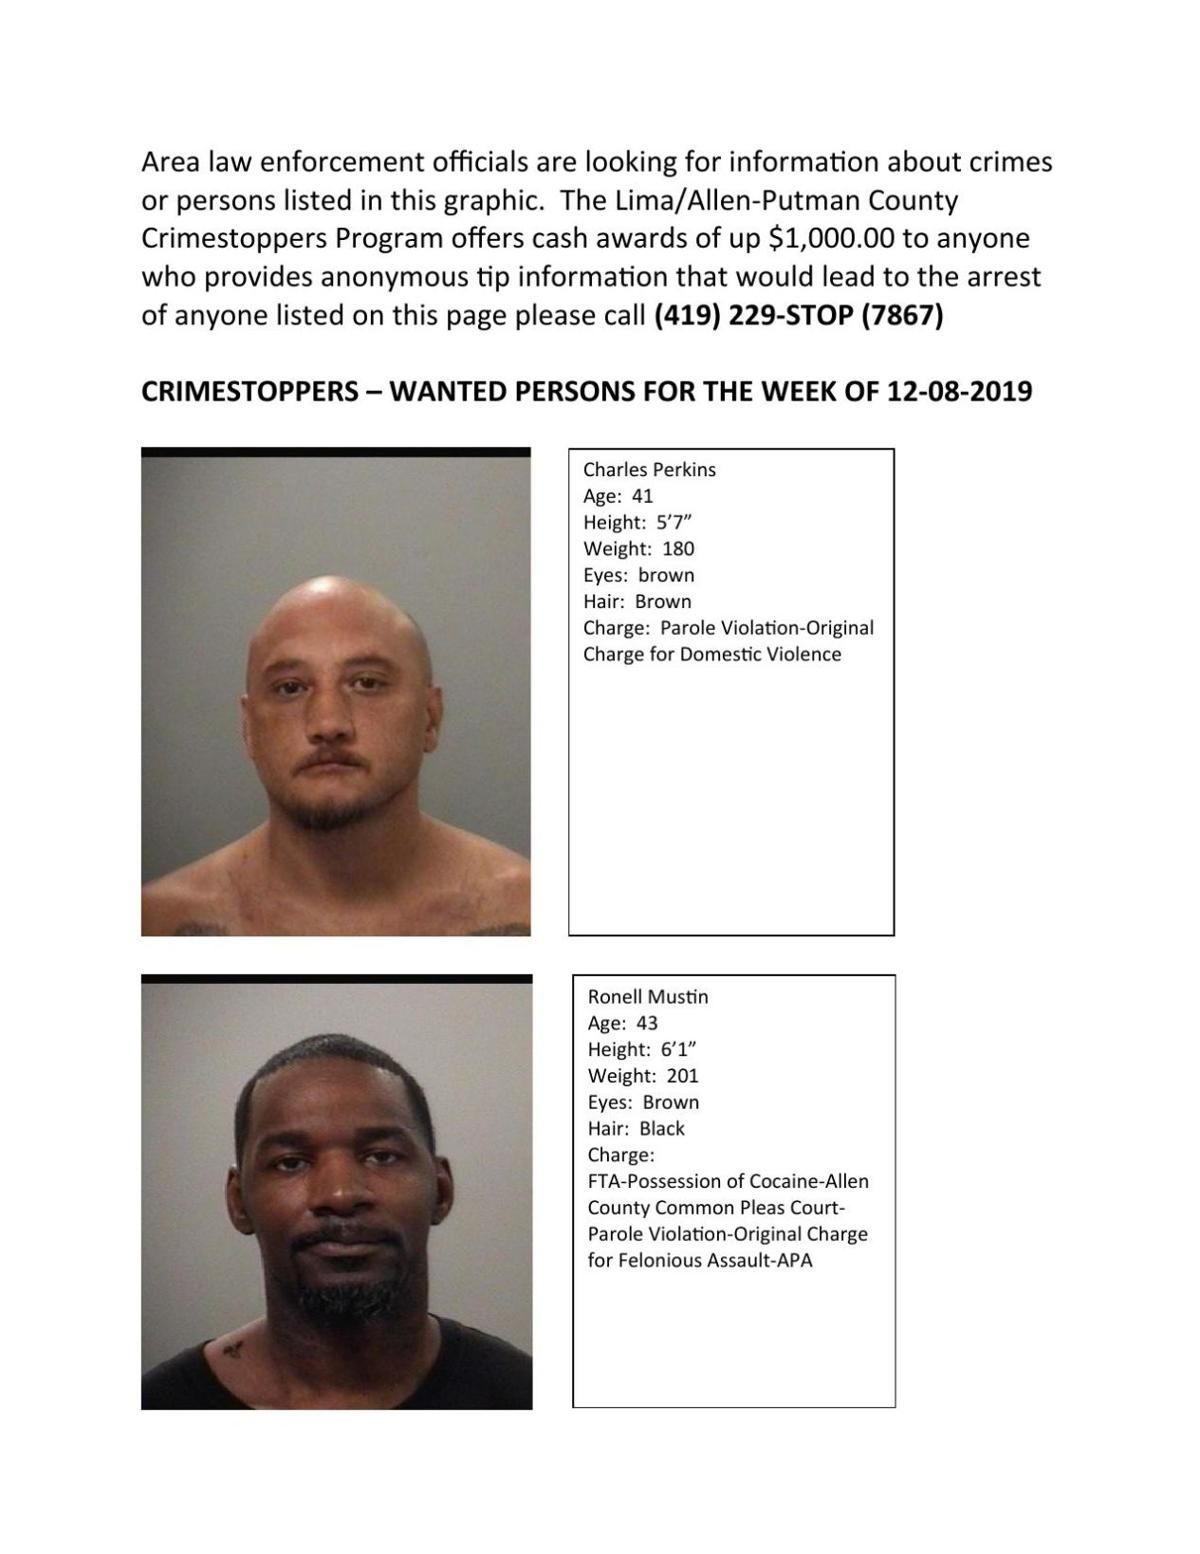 Crimestoppers – Wanted List for the week of 12-08-2019